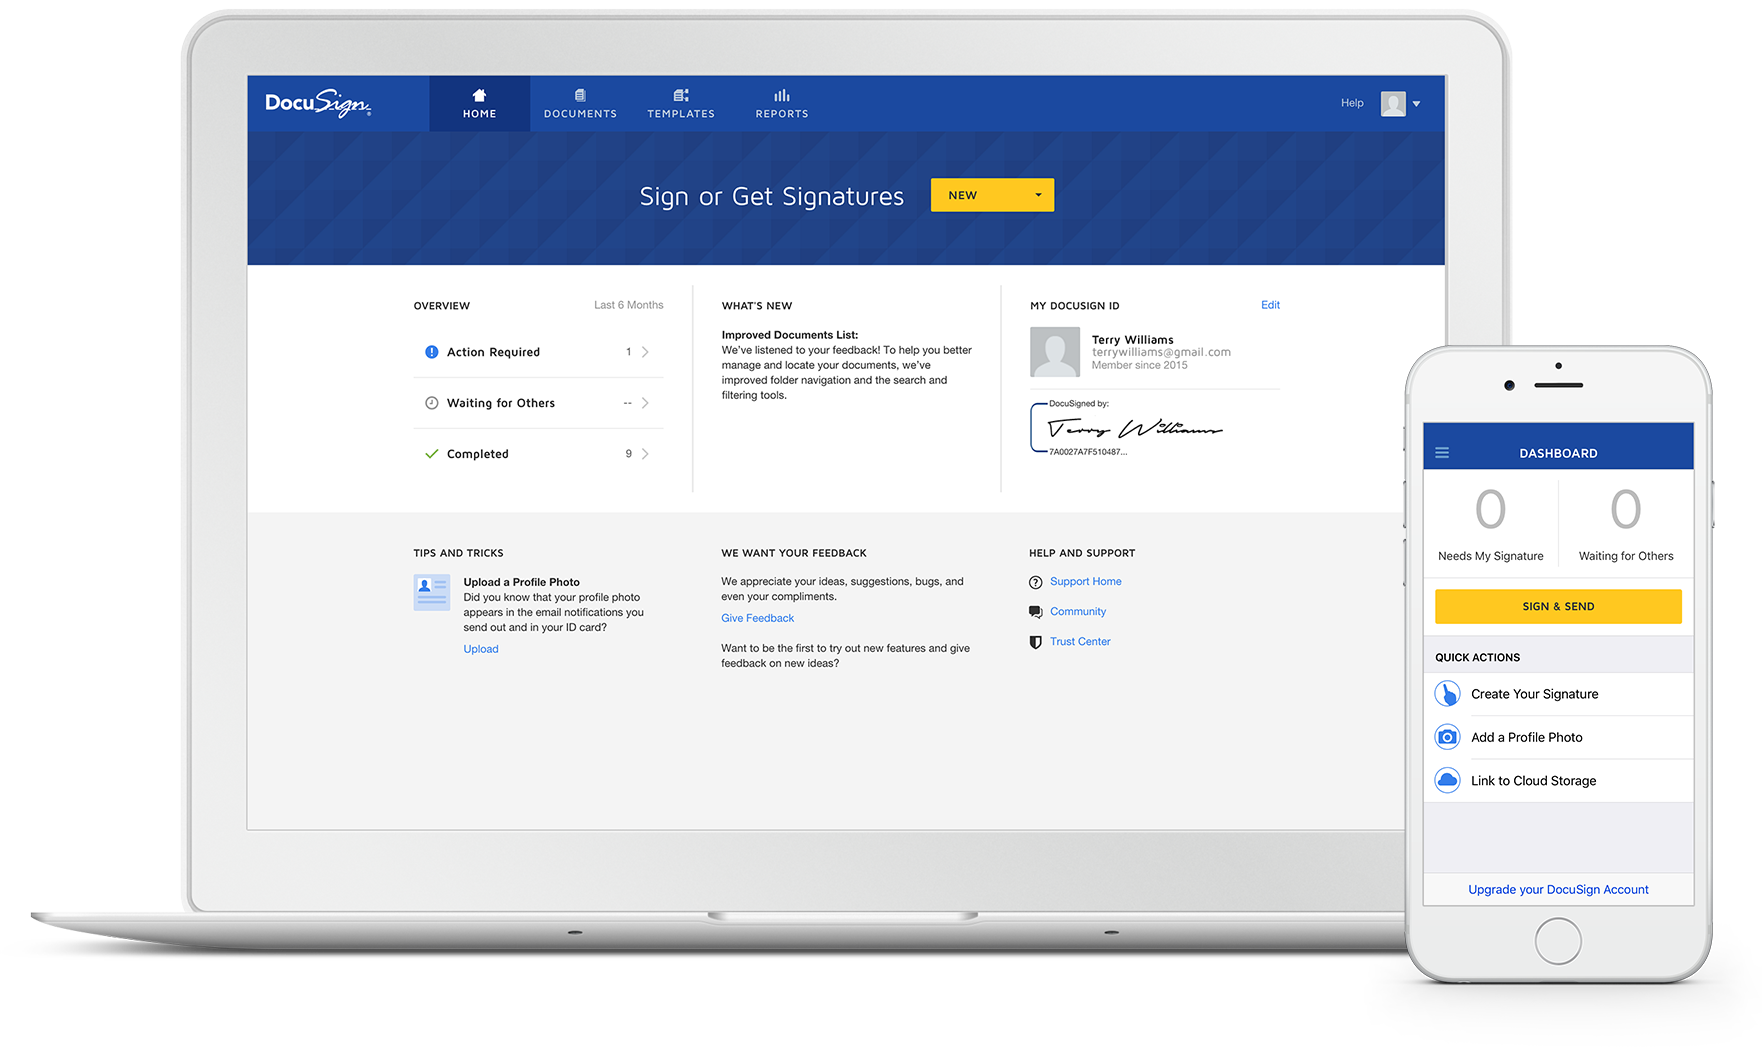 DocuSign product image